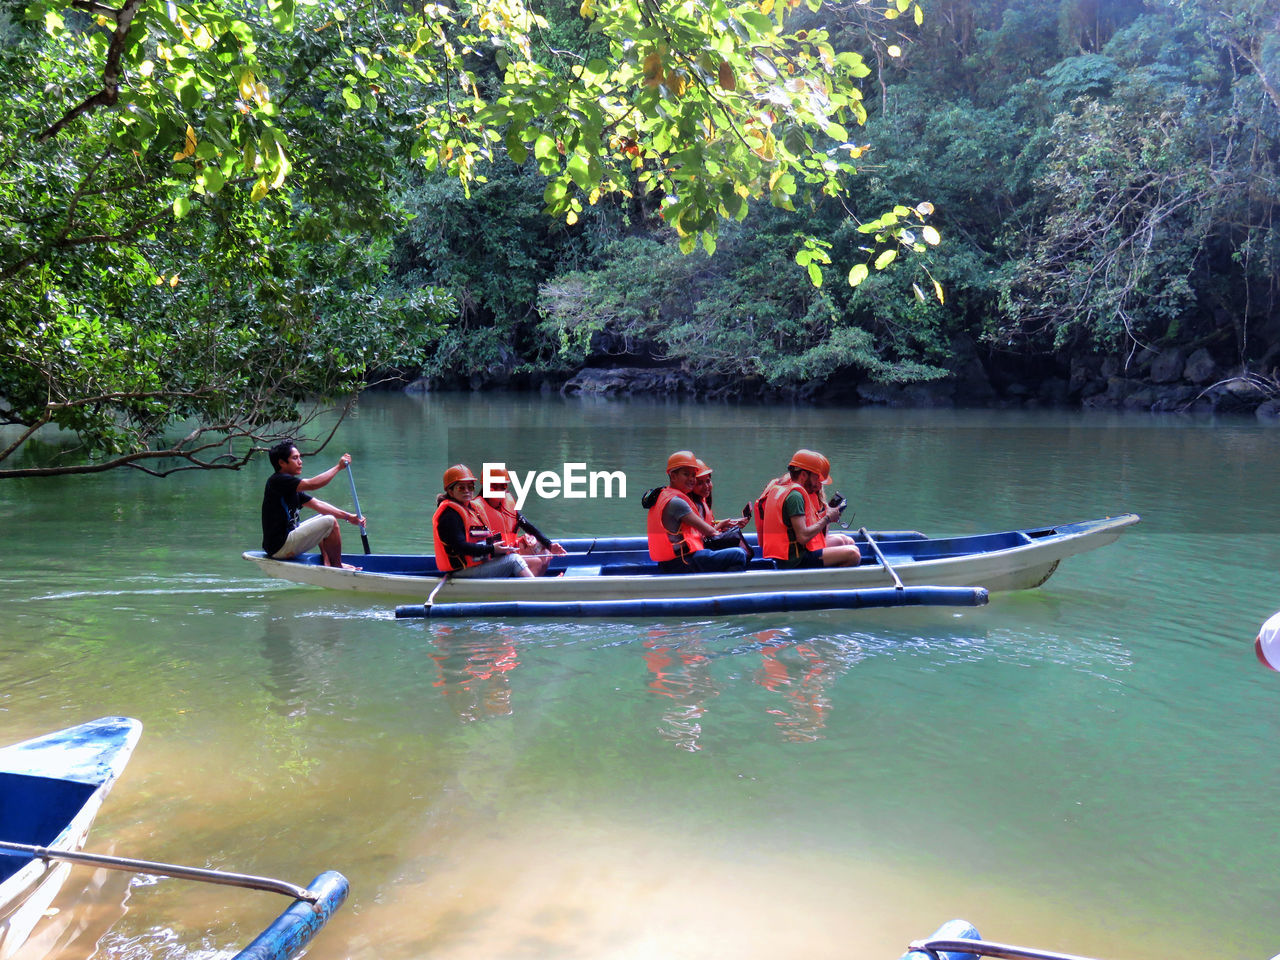 nautical vessel, tree, water, transportation, river, nature, togetherness, real people, oar, leisure activity, mode of transport, men, day, medium group of people, outdoors, sitting, women, adventure, canoe, growth, rowboat, beauty in nature, rowing, rafting, kayak, vacations, lifestyles, adult, people